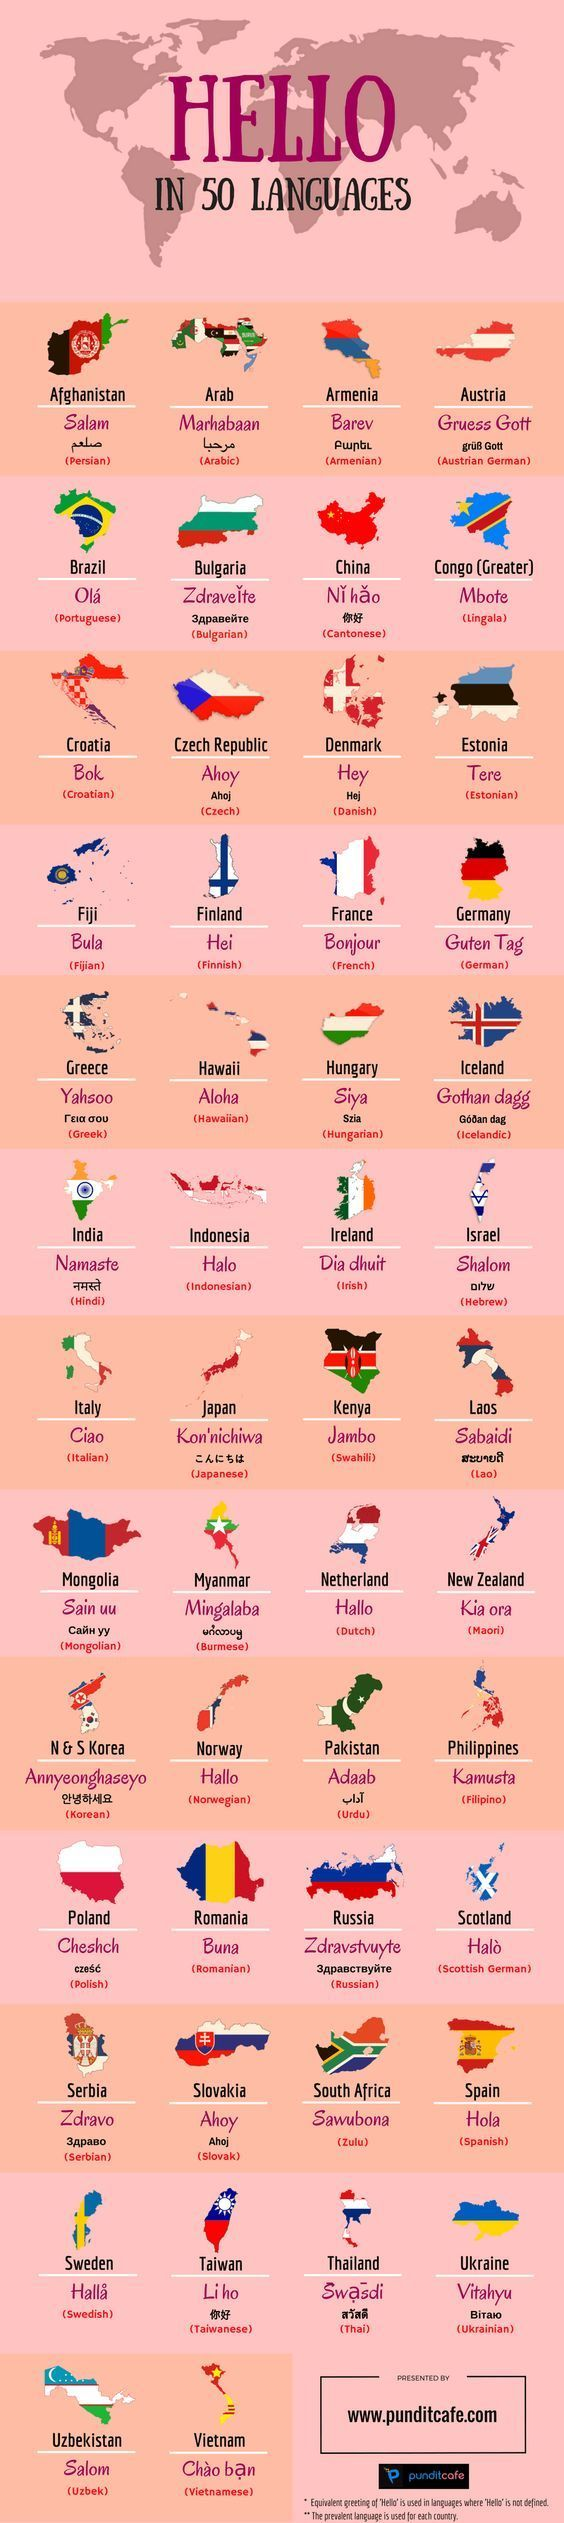 Say Hello in 50 Different Languages [Infographic]